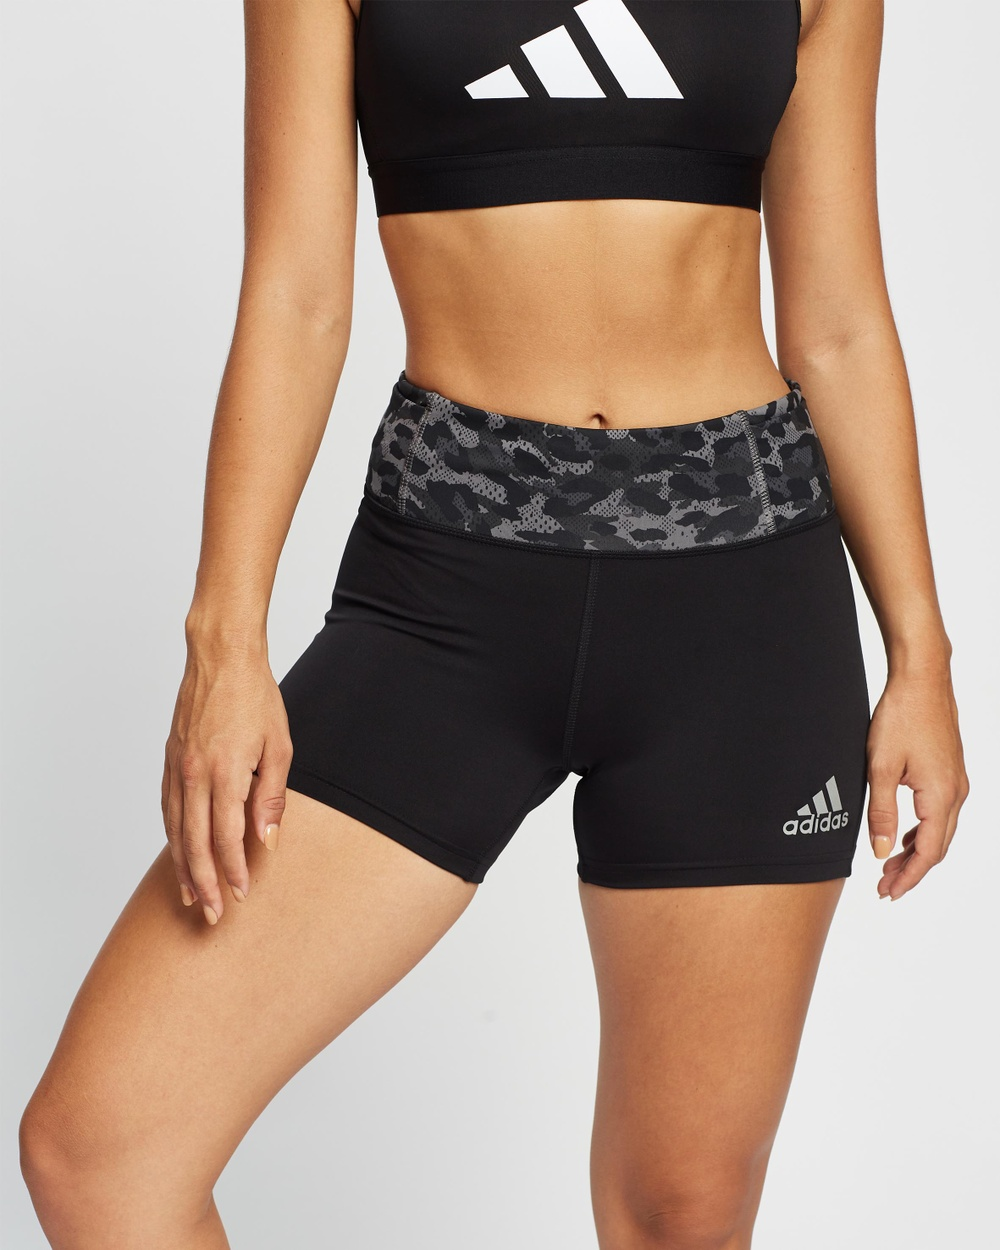 adidas Performance Fast Primeblue Graphic Booty Shorts High-Waisted Black & Grey Four